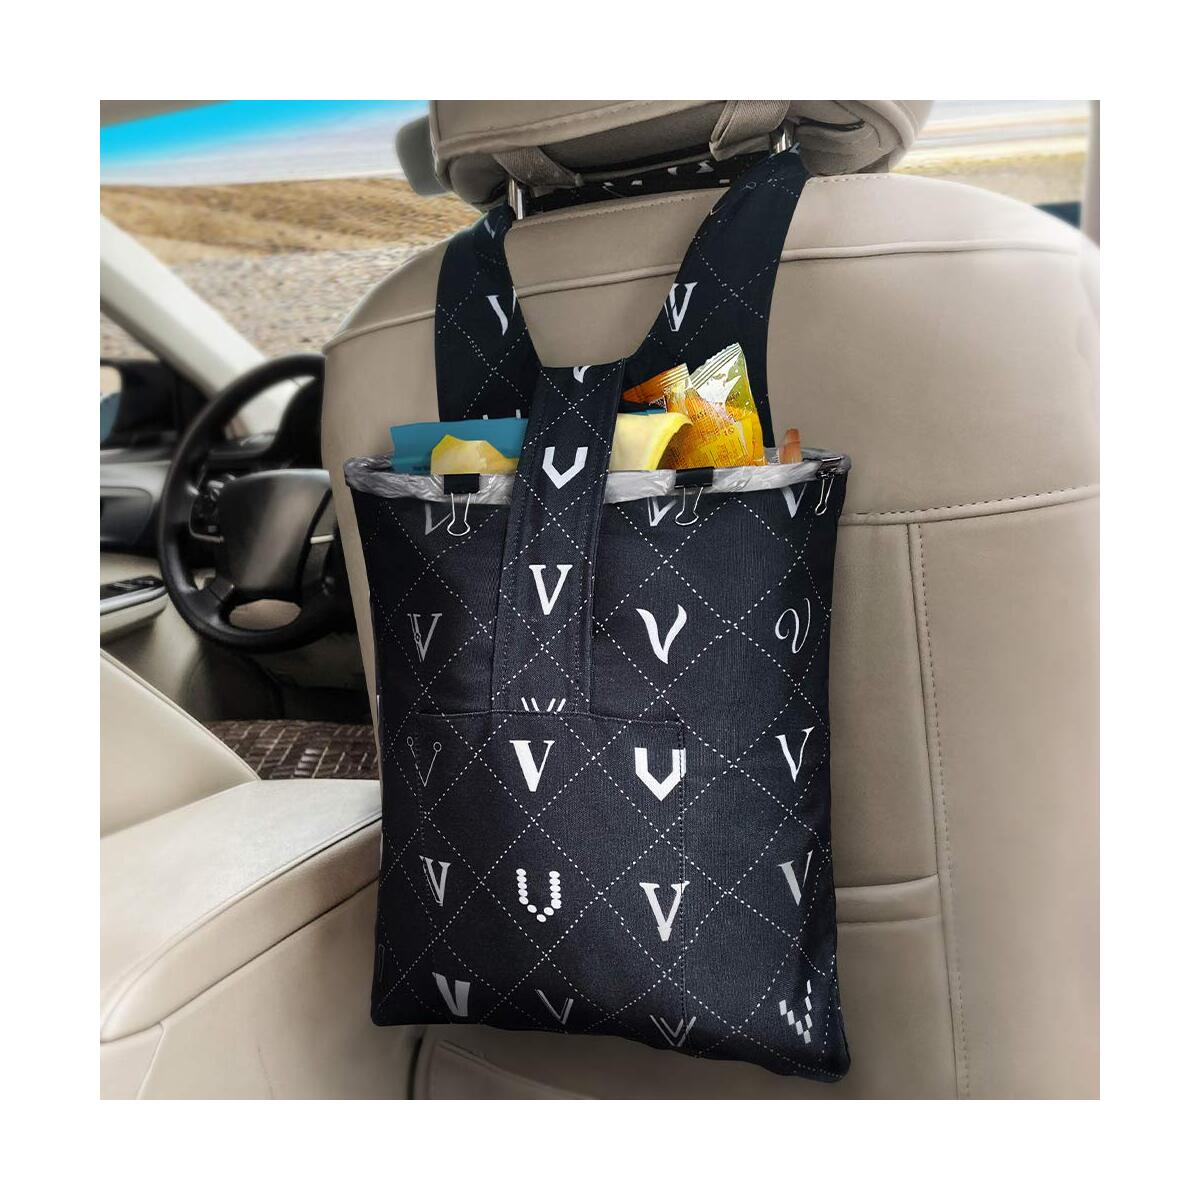 Car Trash Bag Hanging Front Seat, LENDOUBLE Waterproof Garbage Can for Auto with Small Storage Pockets Container, Foldable Travel Vehicle Waste Bin for Back Seat, Velcro Litter Bags for Headrest